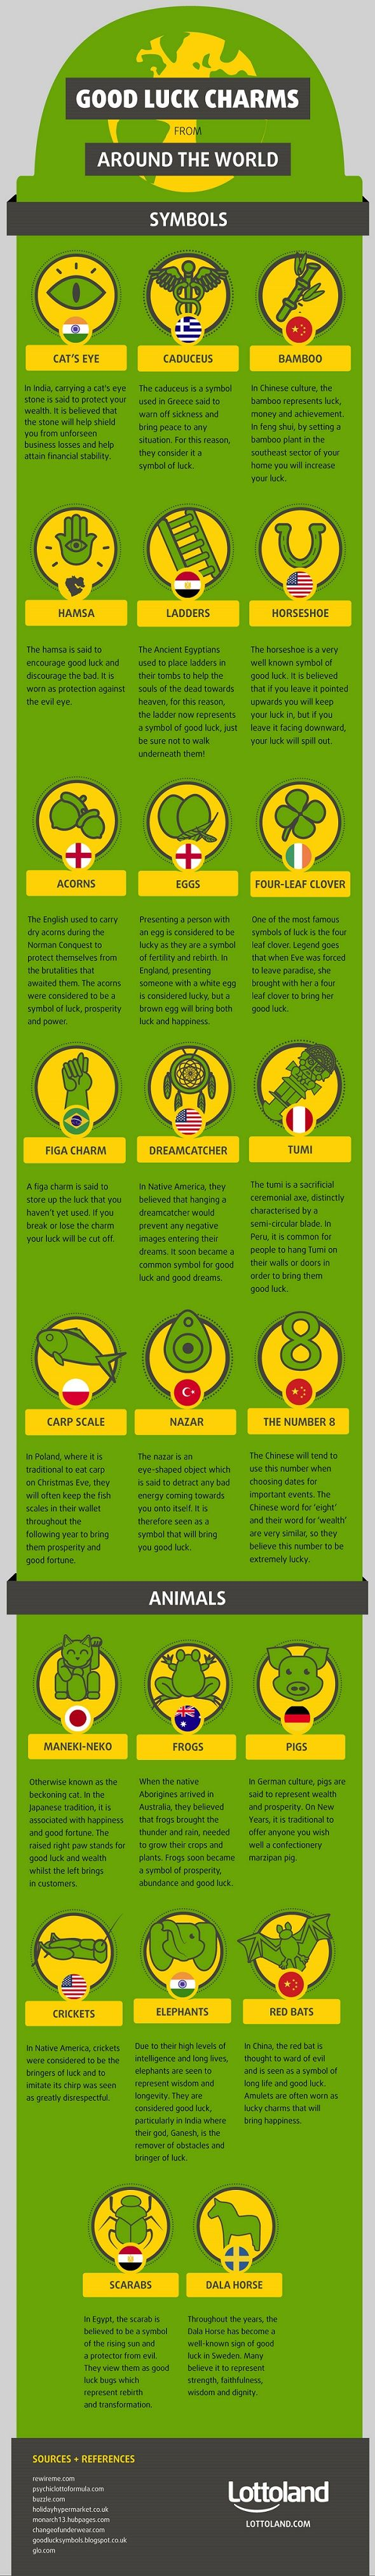 Today's infographic touches on some more believable and common good luck charms across the globe